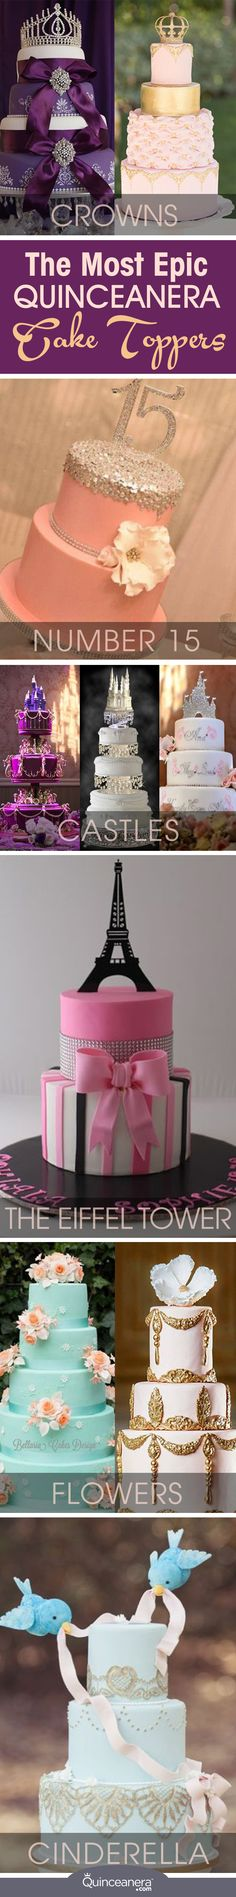 The most appetizing and best looking cakes have crowns, castles, The Eiffel Tower, you name it! To personalize it even further, you can include your initials so everyone knows you're the star of the party. - See more at: http://www.quinceanera.com/food/epic-quinceanera-cake-toppers/?utm_source=pinterest&utm_medium=social&utm_campaign=food-epic-quinceanera-cake-toppers#sthash.Xwvp6BeC.dpuf